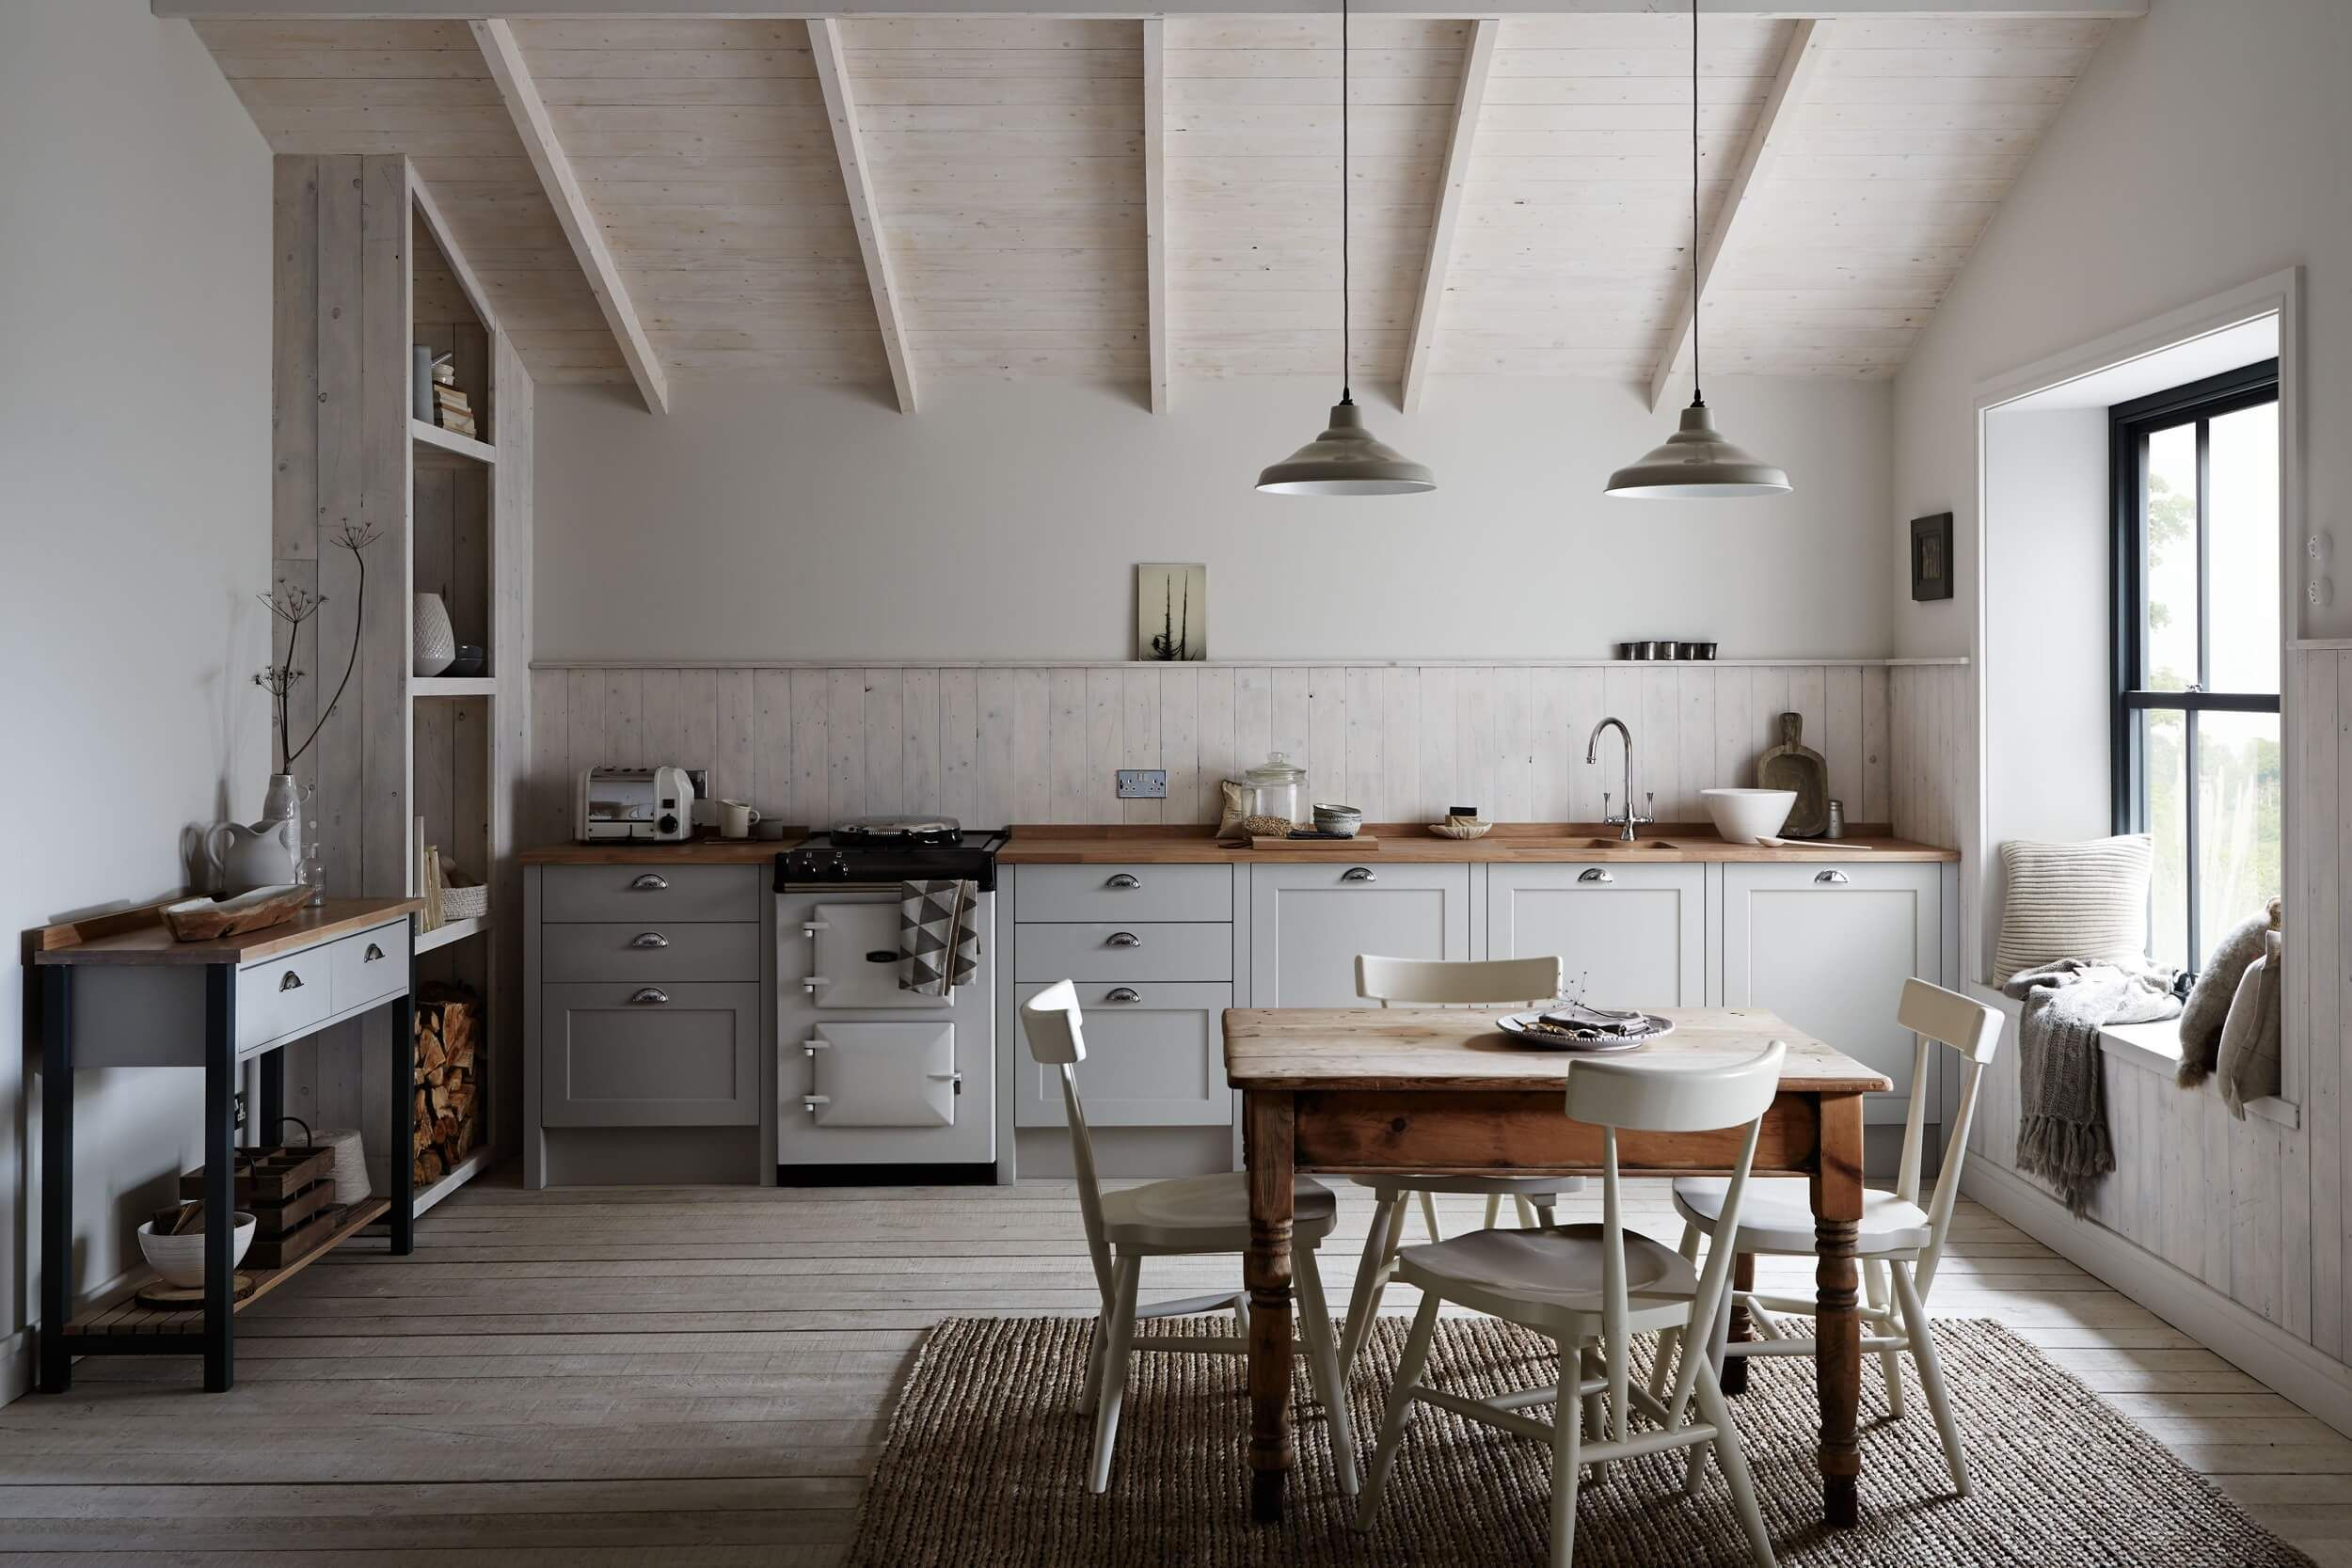 Best European Kitchen Design For You In 2018 And Beyond in